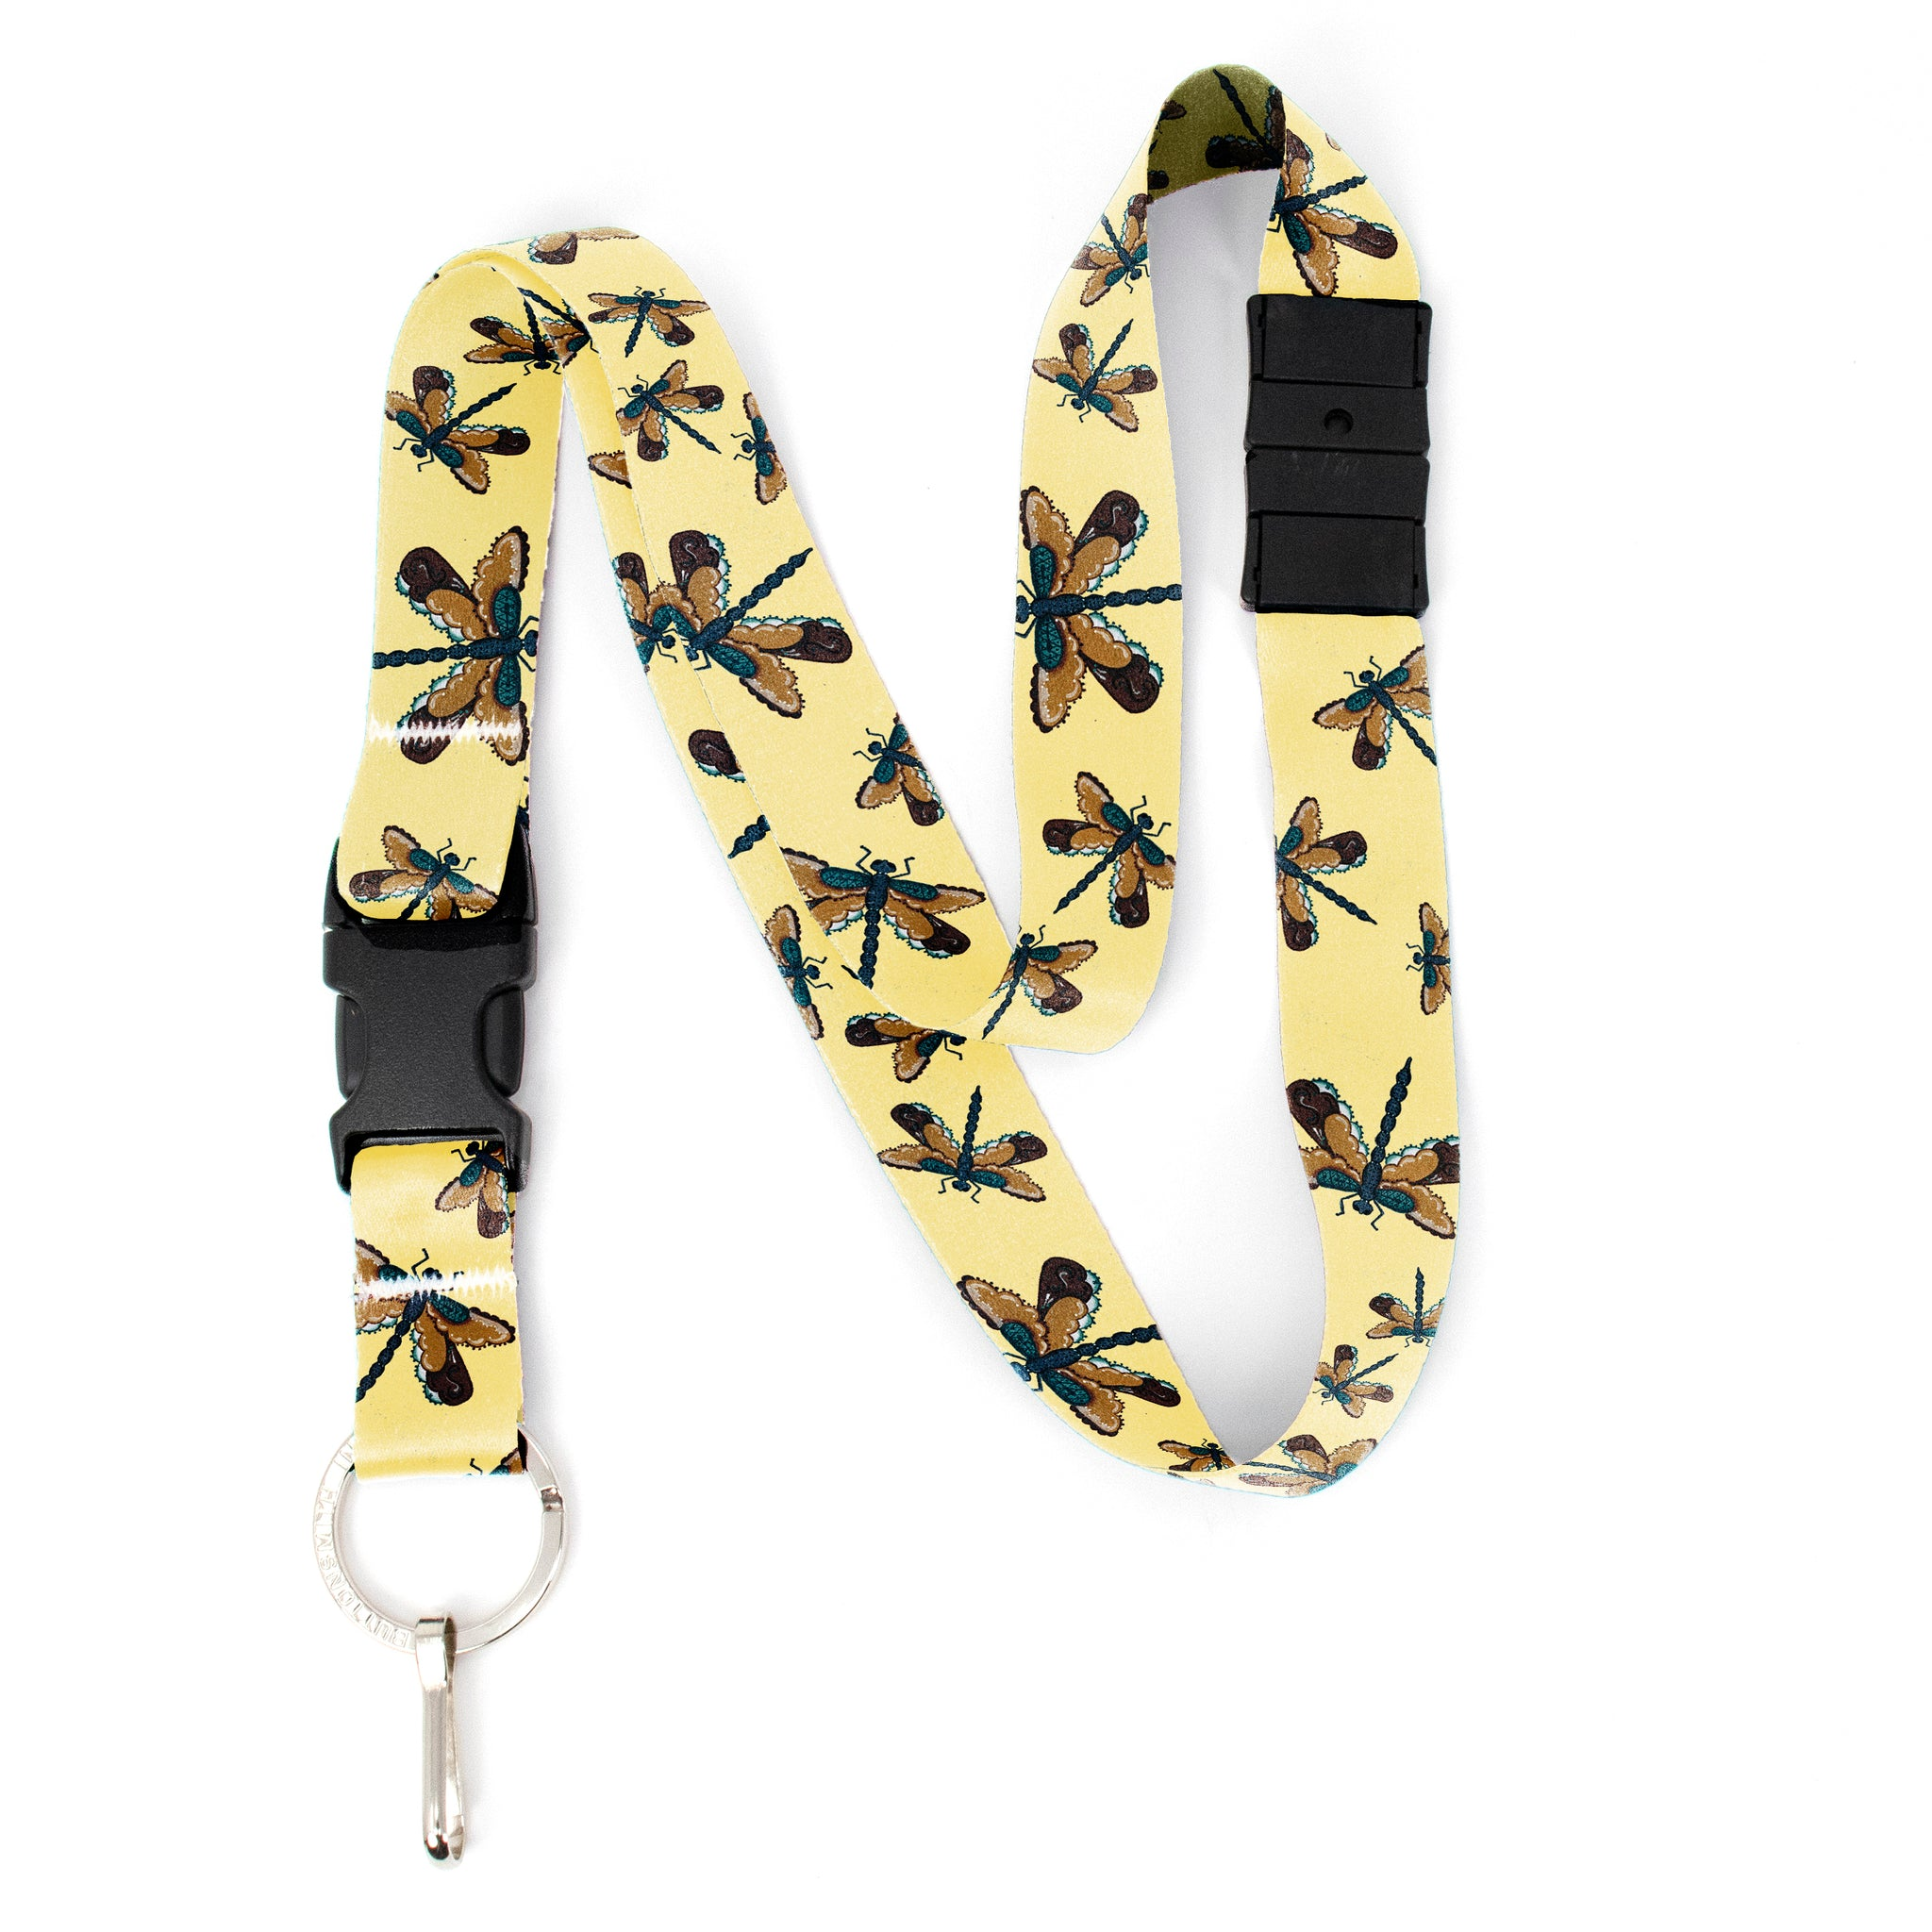 Buttonsmith Dragonflies Breakaway Lanyard - with Buckle and Flat Ring - Based on Rebecca McGovern Art - Officially Licensed - Made in the USA